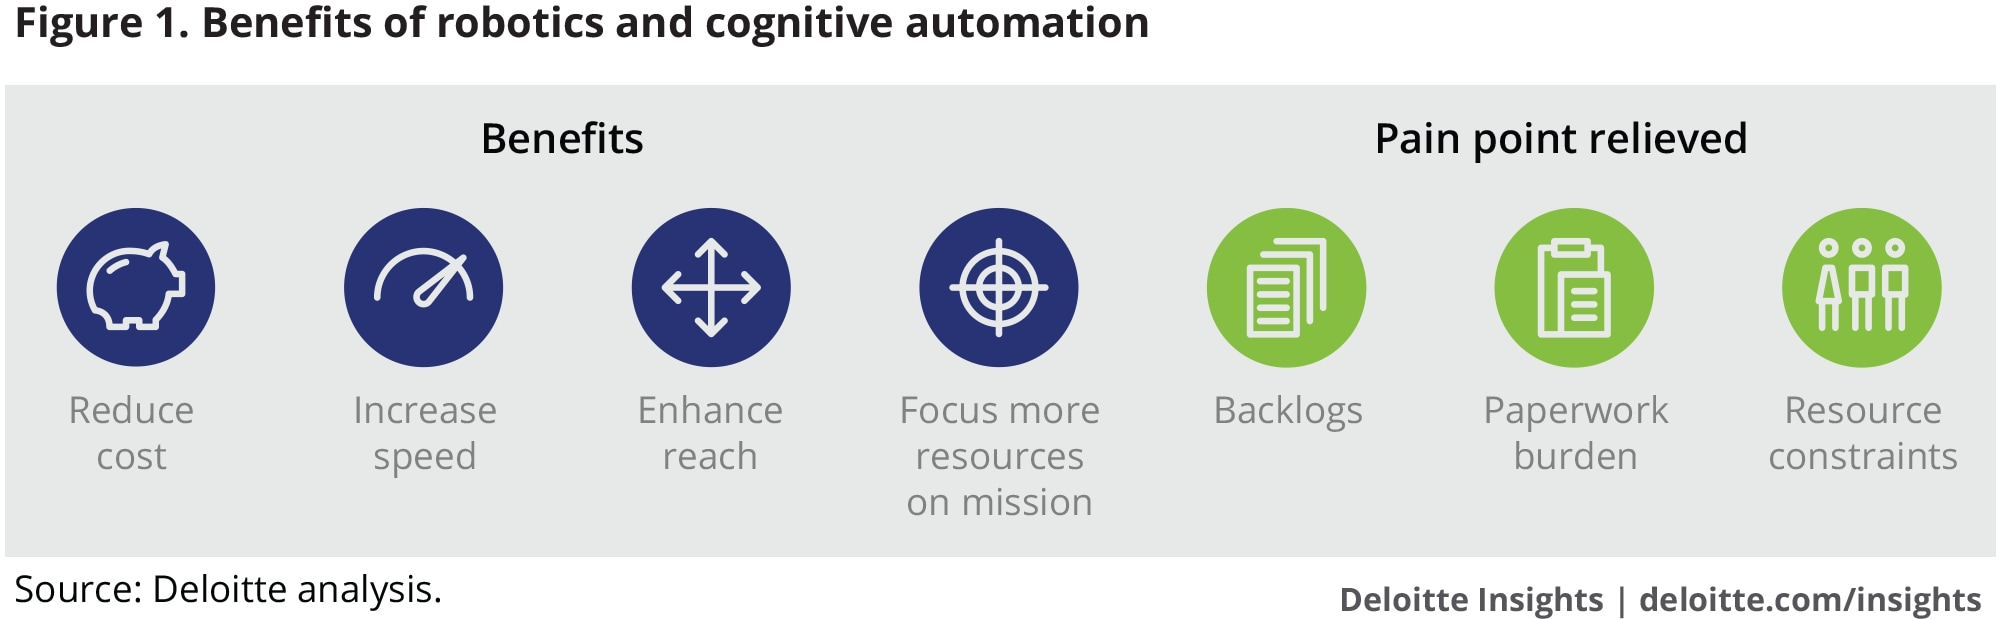 Benefits of robotics and cognitive automation